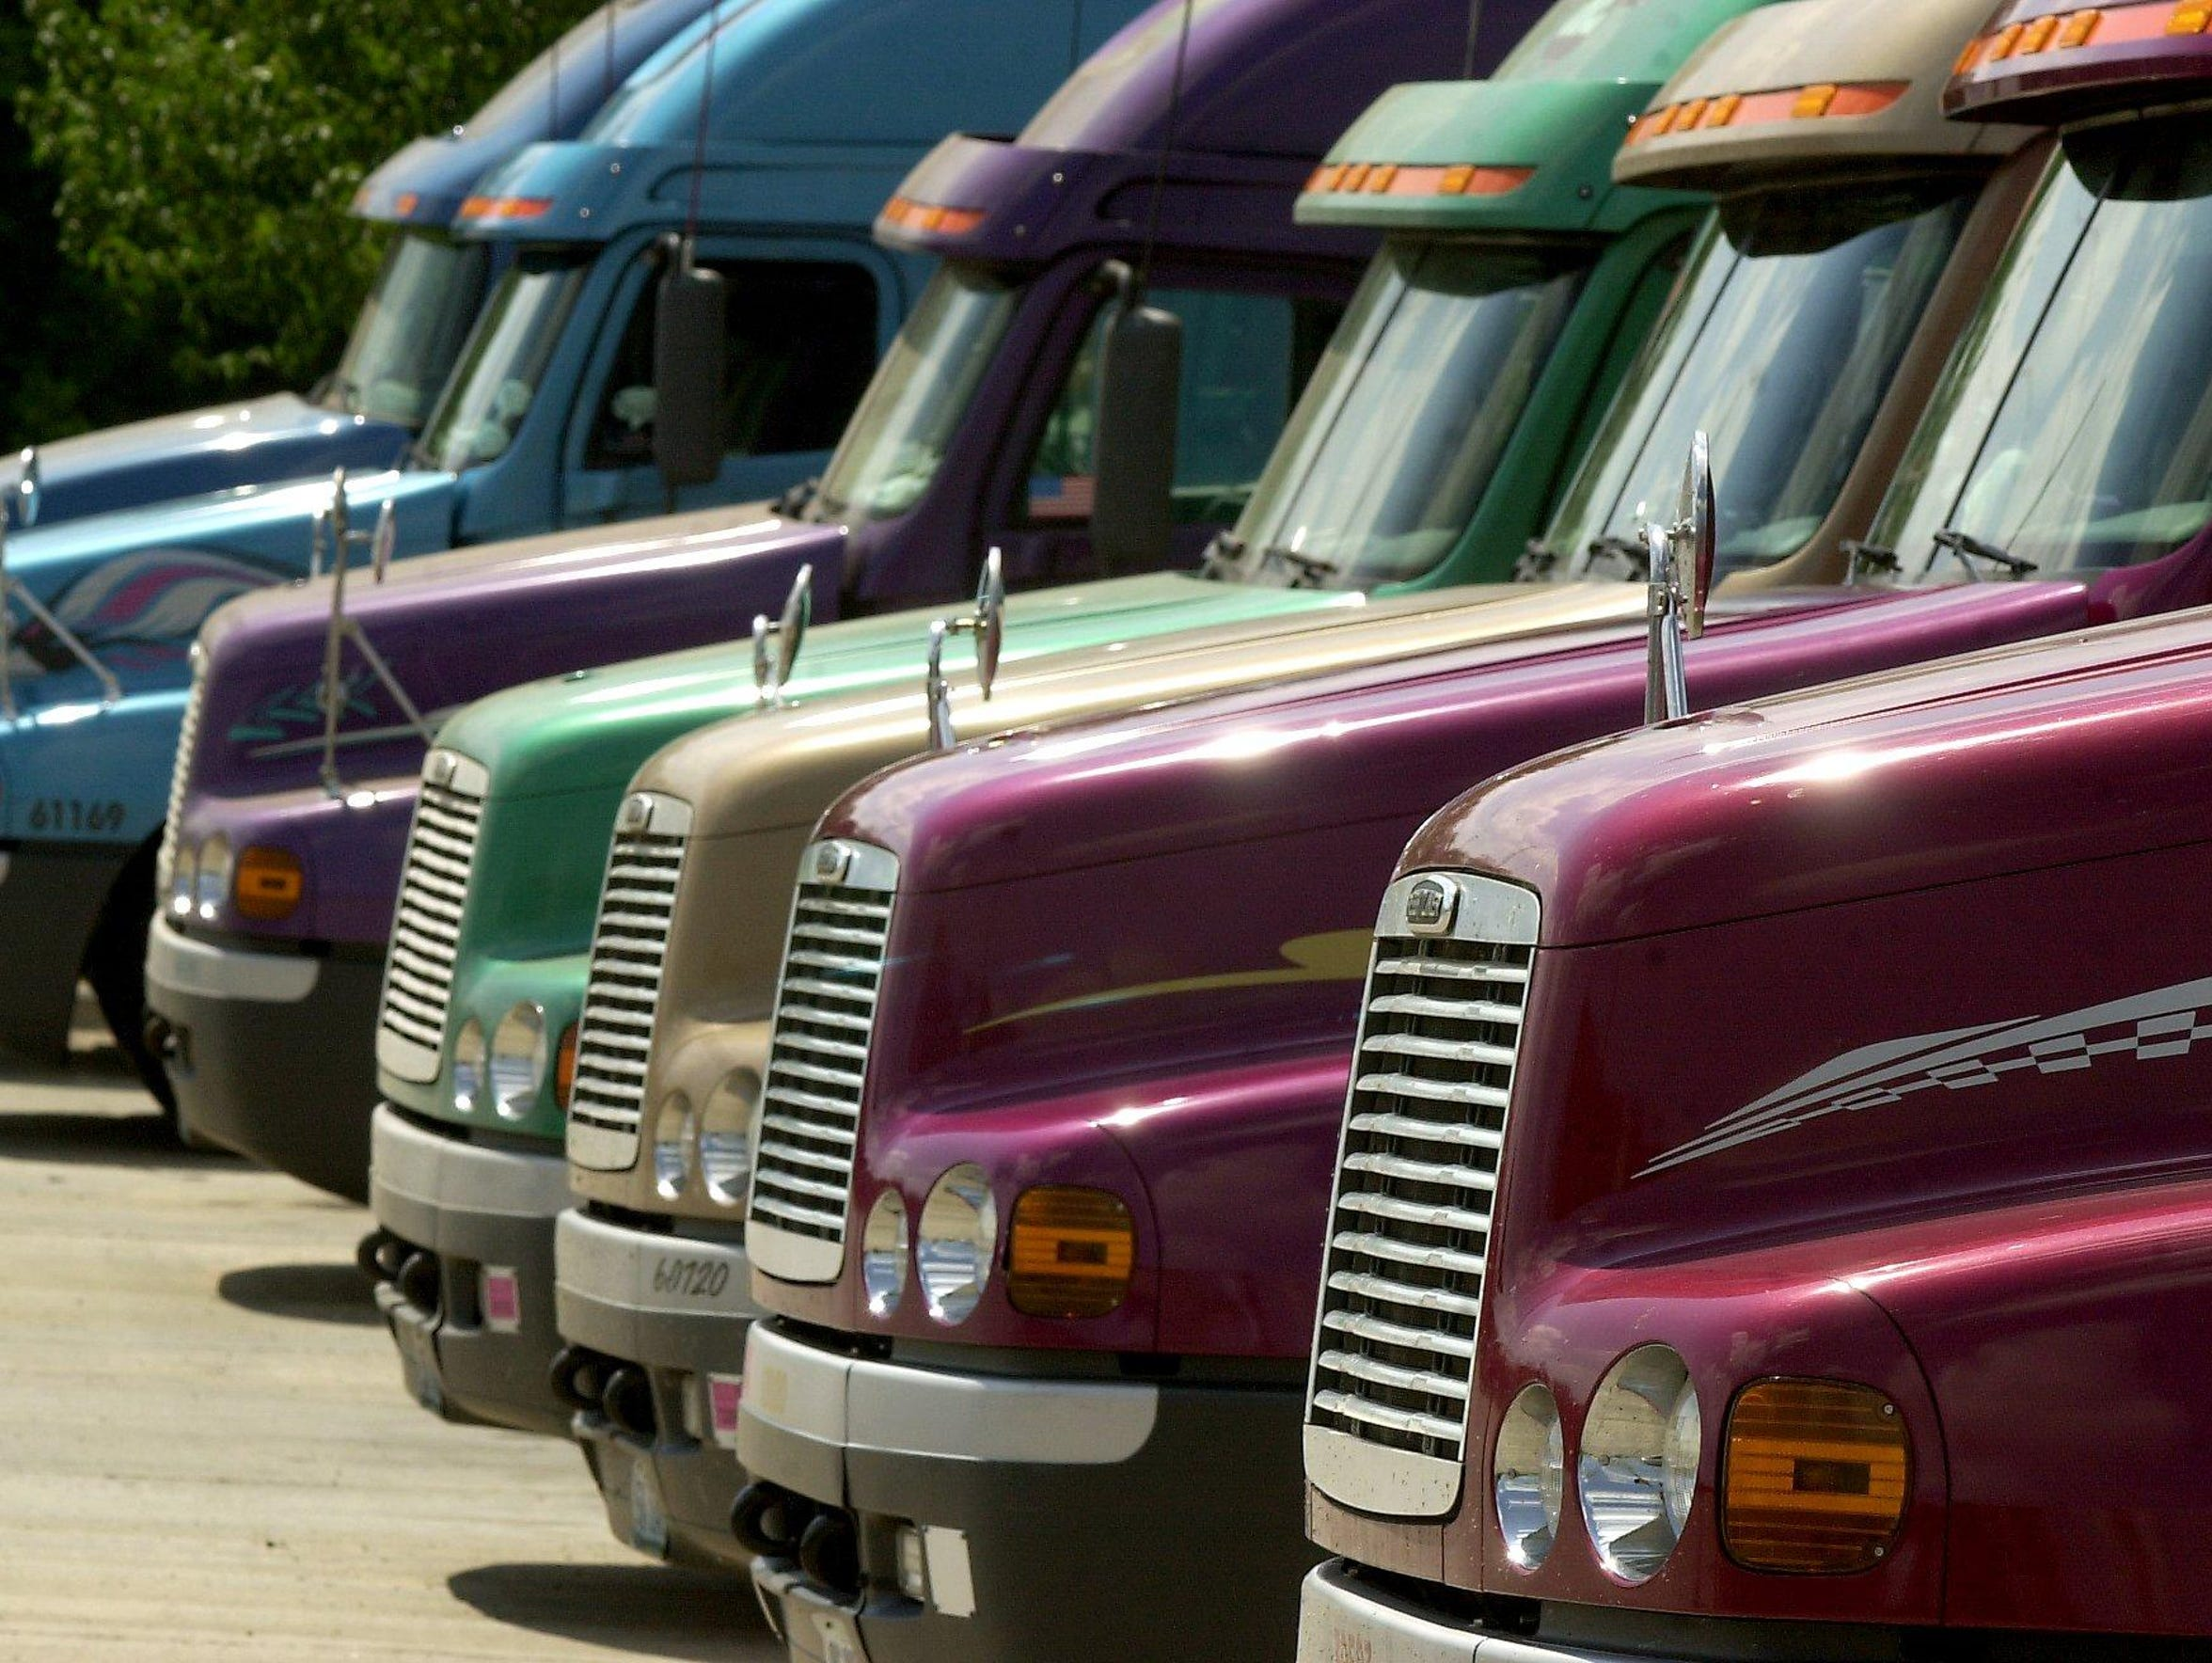 Springfield-based trucking company Prime loaned Wallace